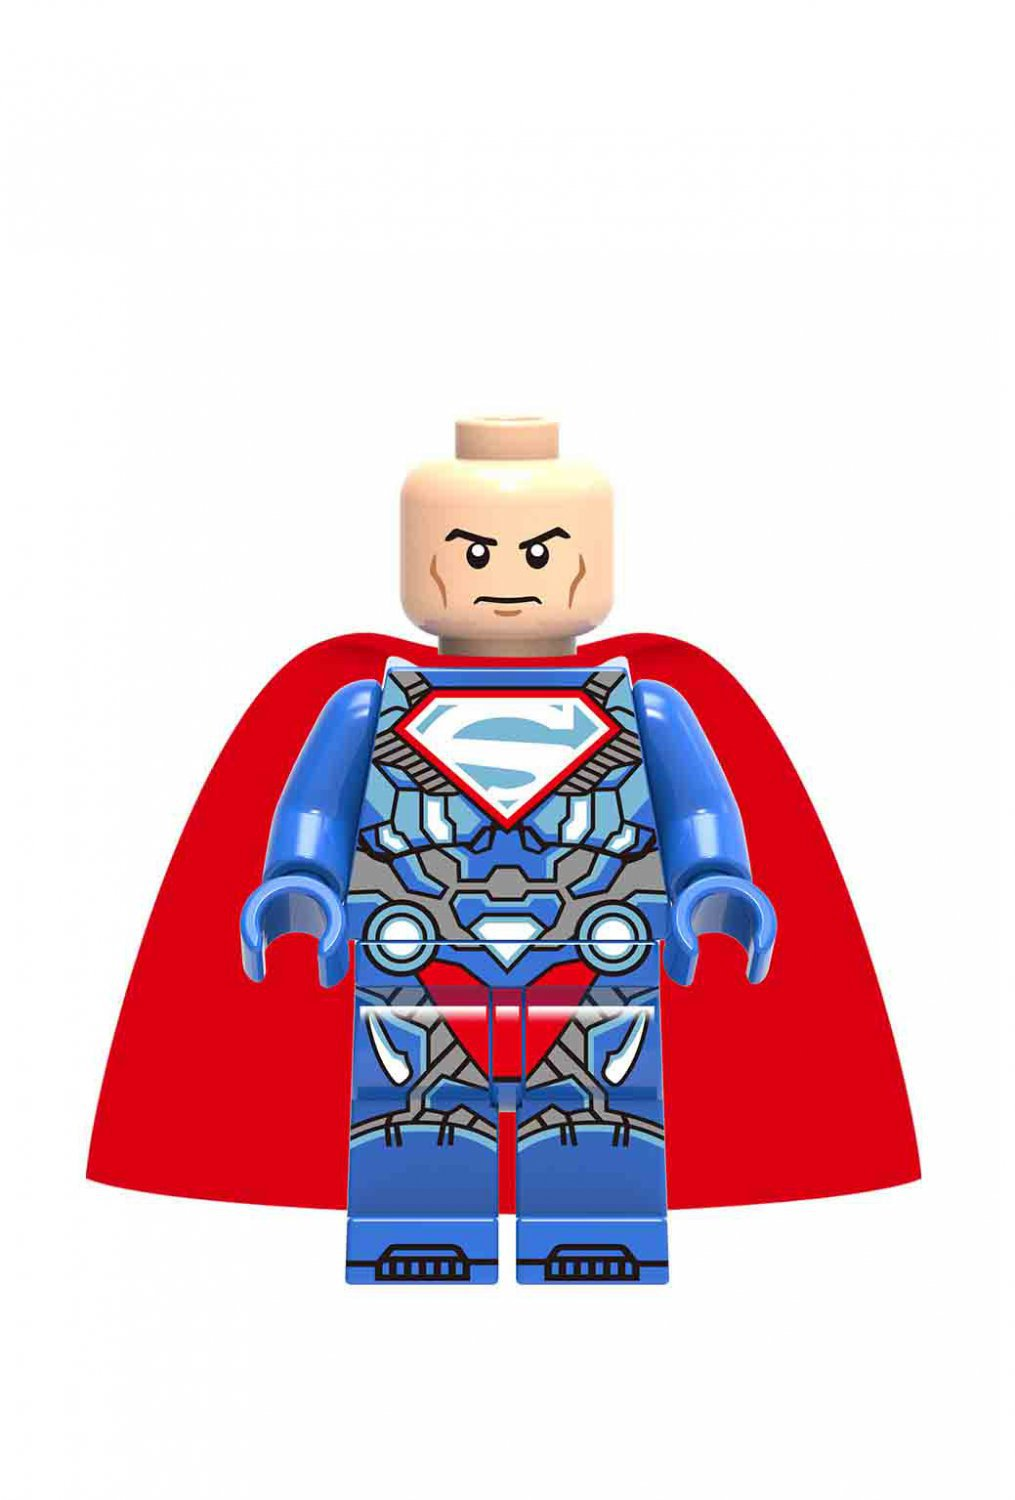 Luthor Superman Lego Minifigures Compatible Super Heroes Toy